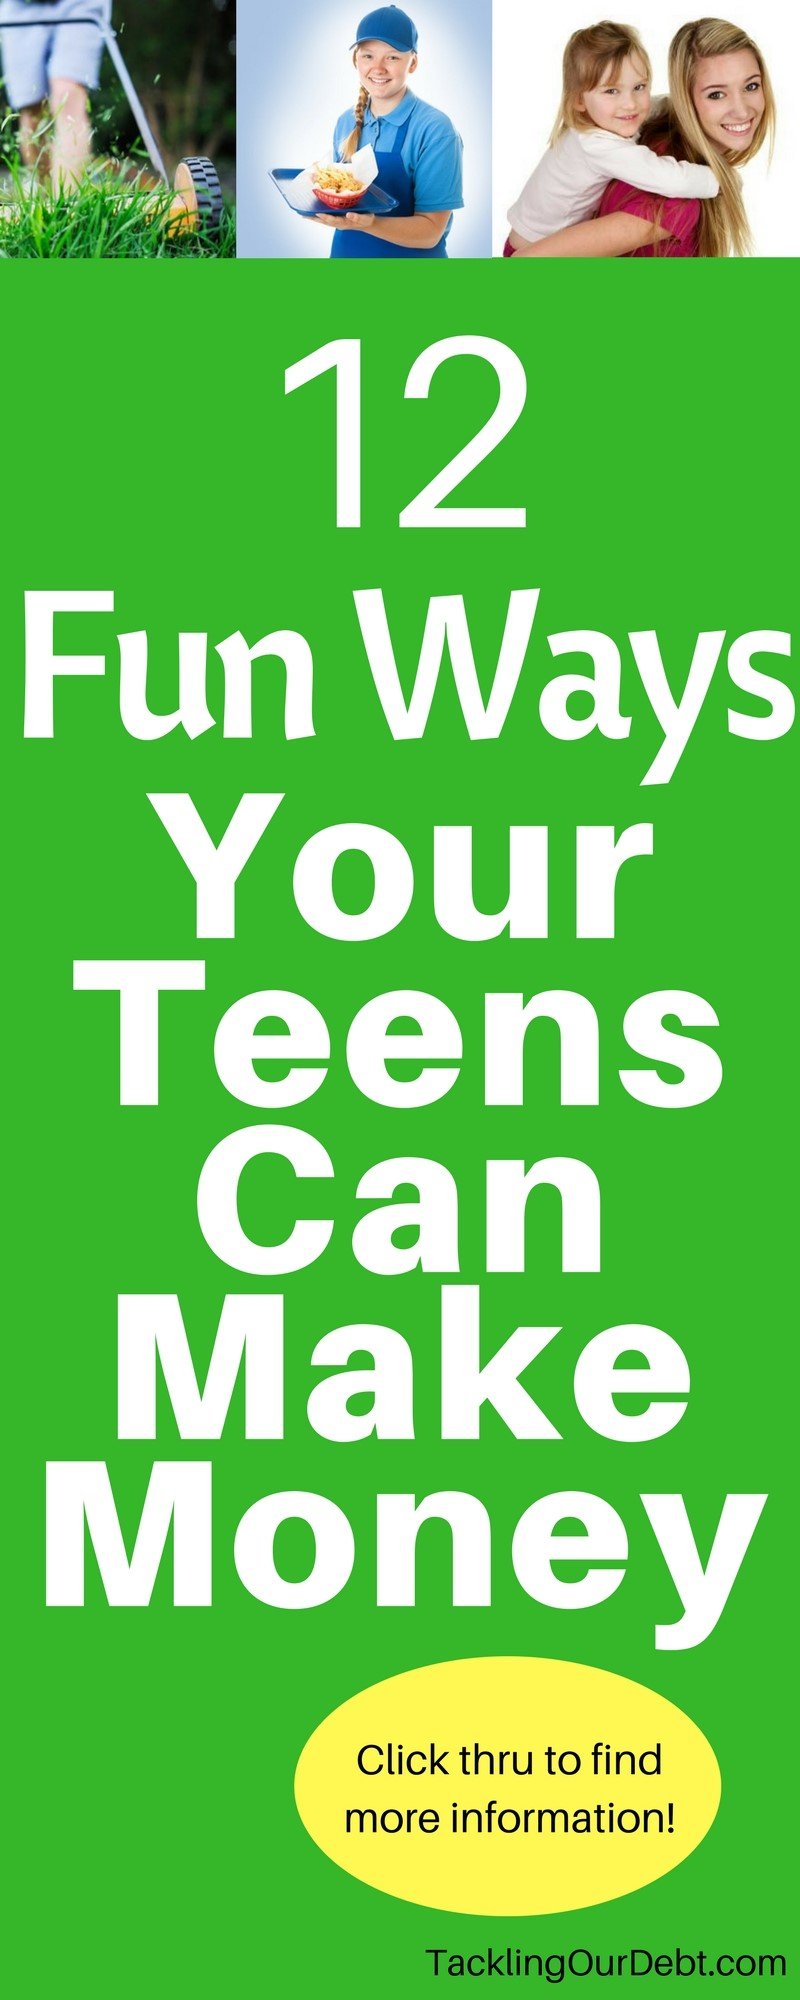 12 Fun Ways Your Teen Can Make Money Is your teen ready to begin making money? Here are some fun ways that they can do just that. Teach teens how to make money. Click thru to find more information!